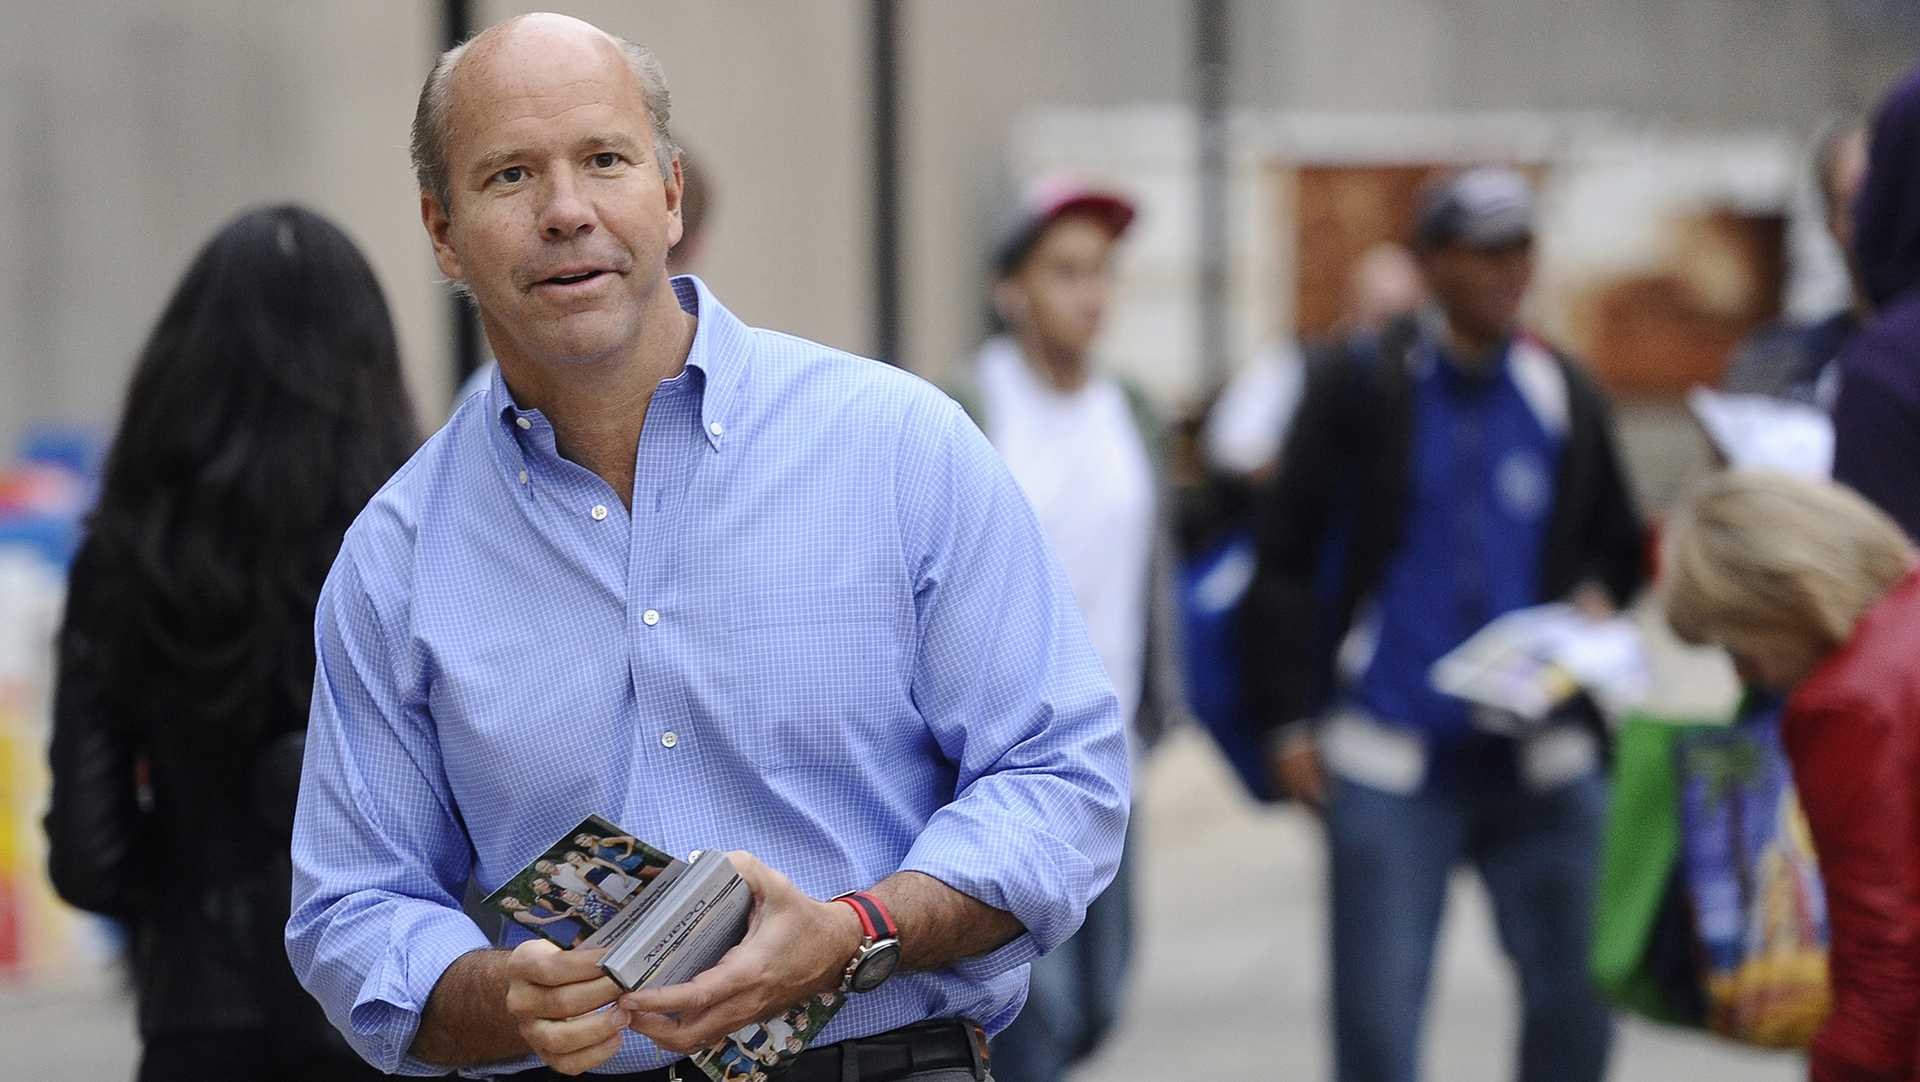 Congressman John Delaney campaigns at the Shady Grove Metro station in a file image from 2014. Delaney is running for president, but polling at zero. (Kim Hairston/Baltimore Sun/TNS)